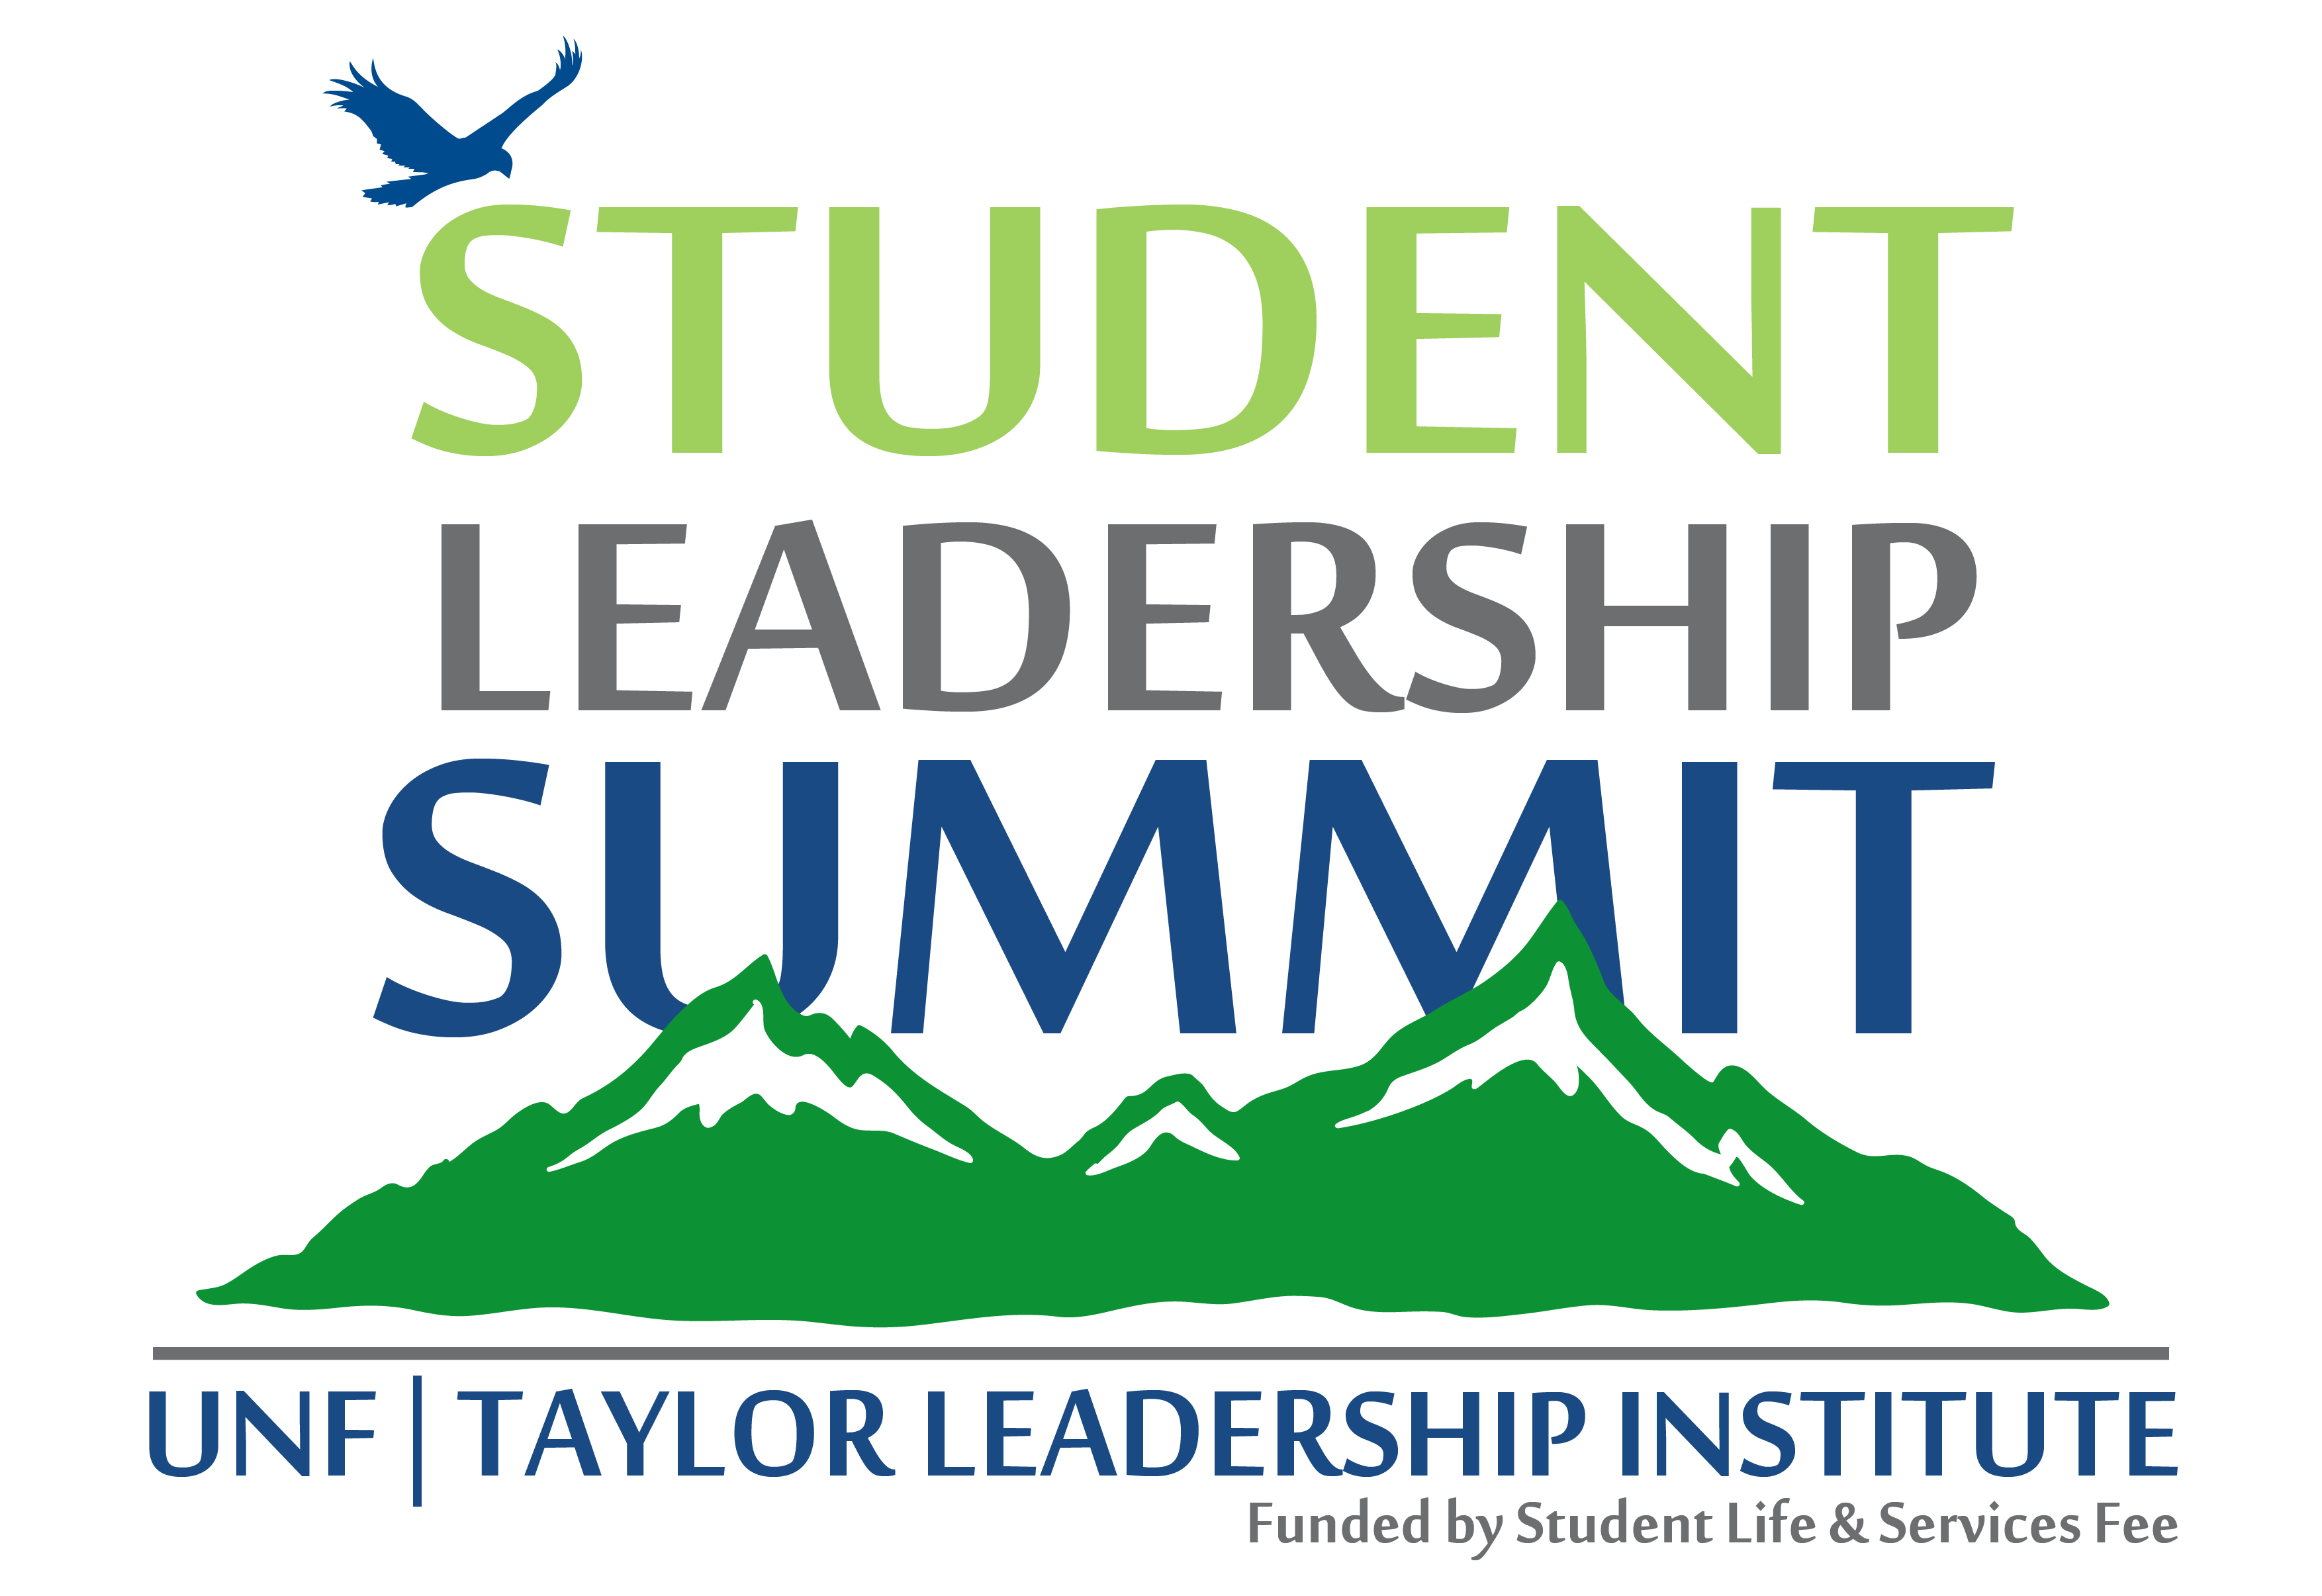 Student Leadership Summit logo by UNF Taylor Leadership Institute